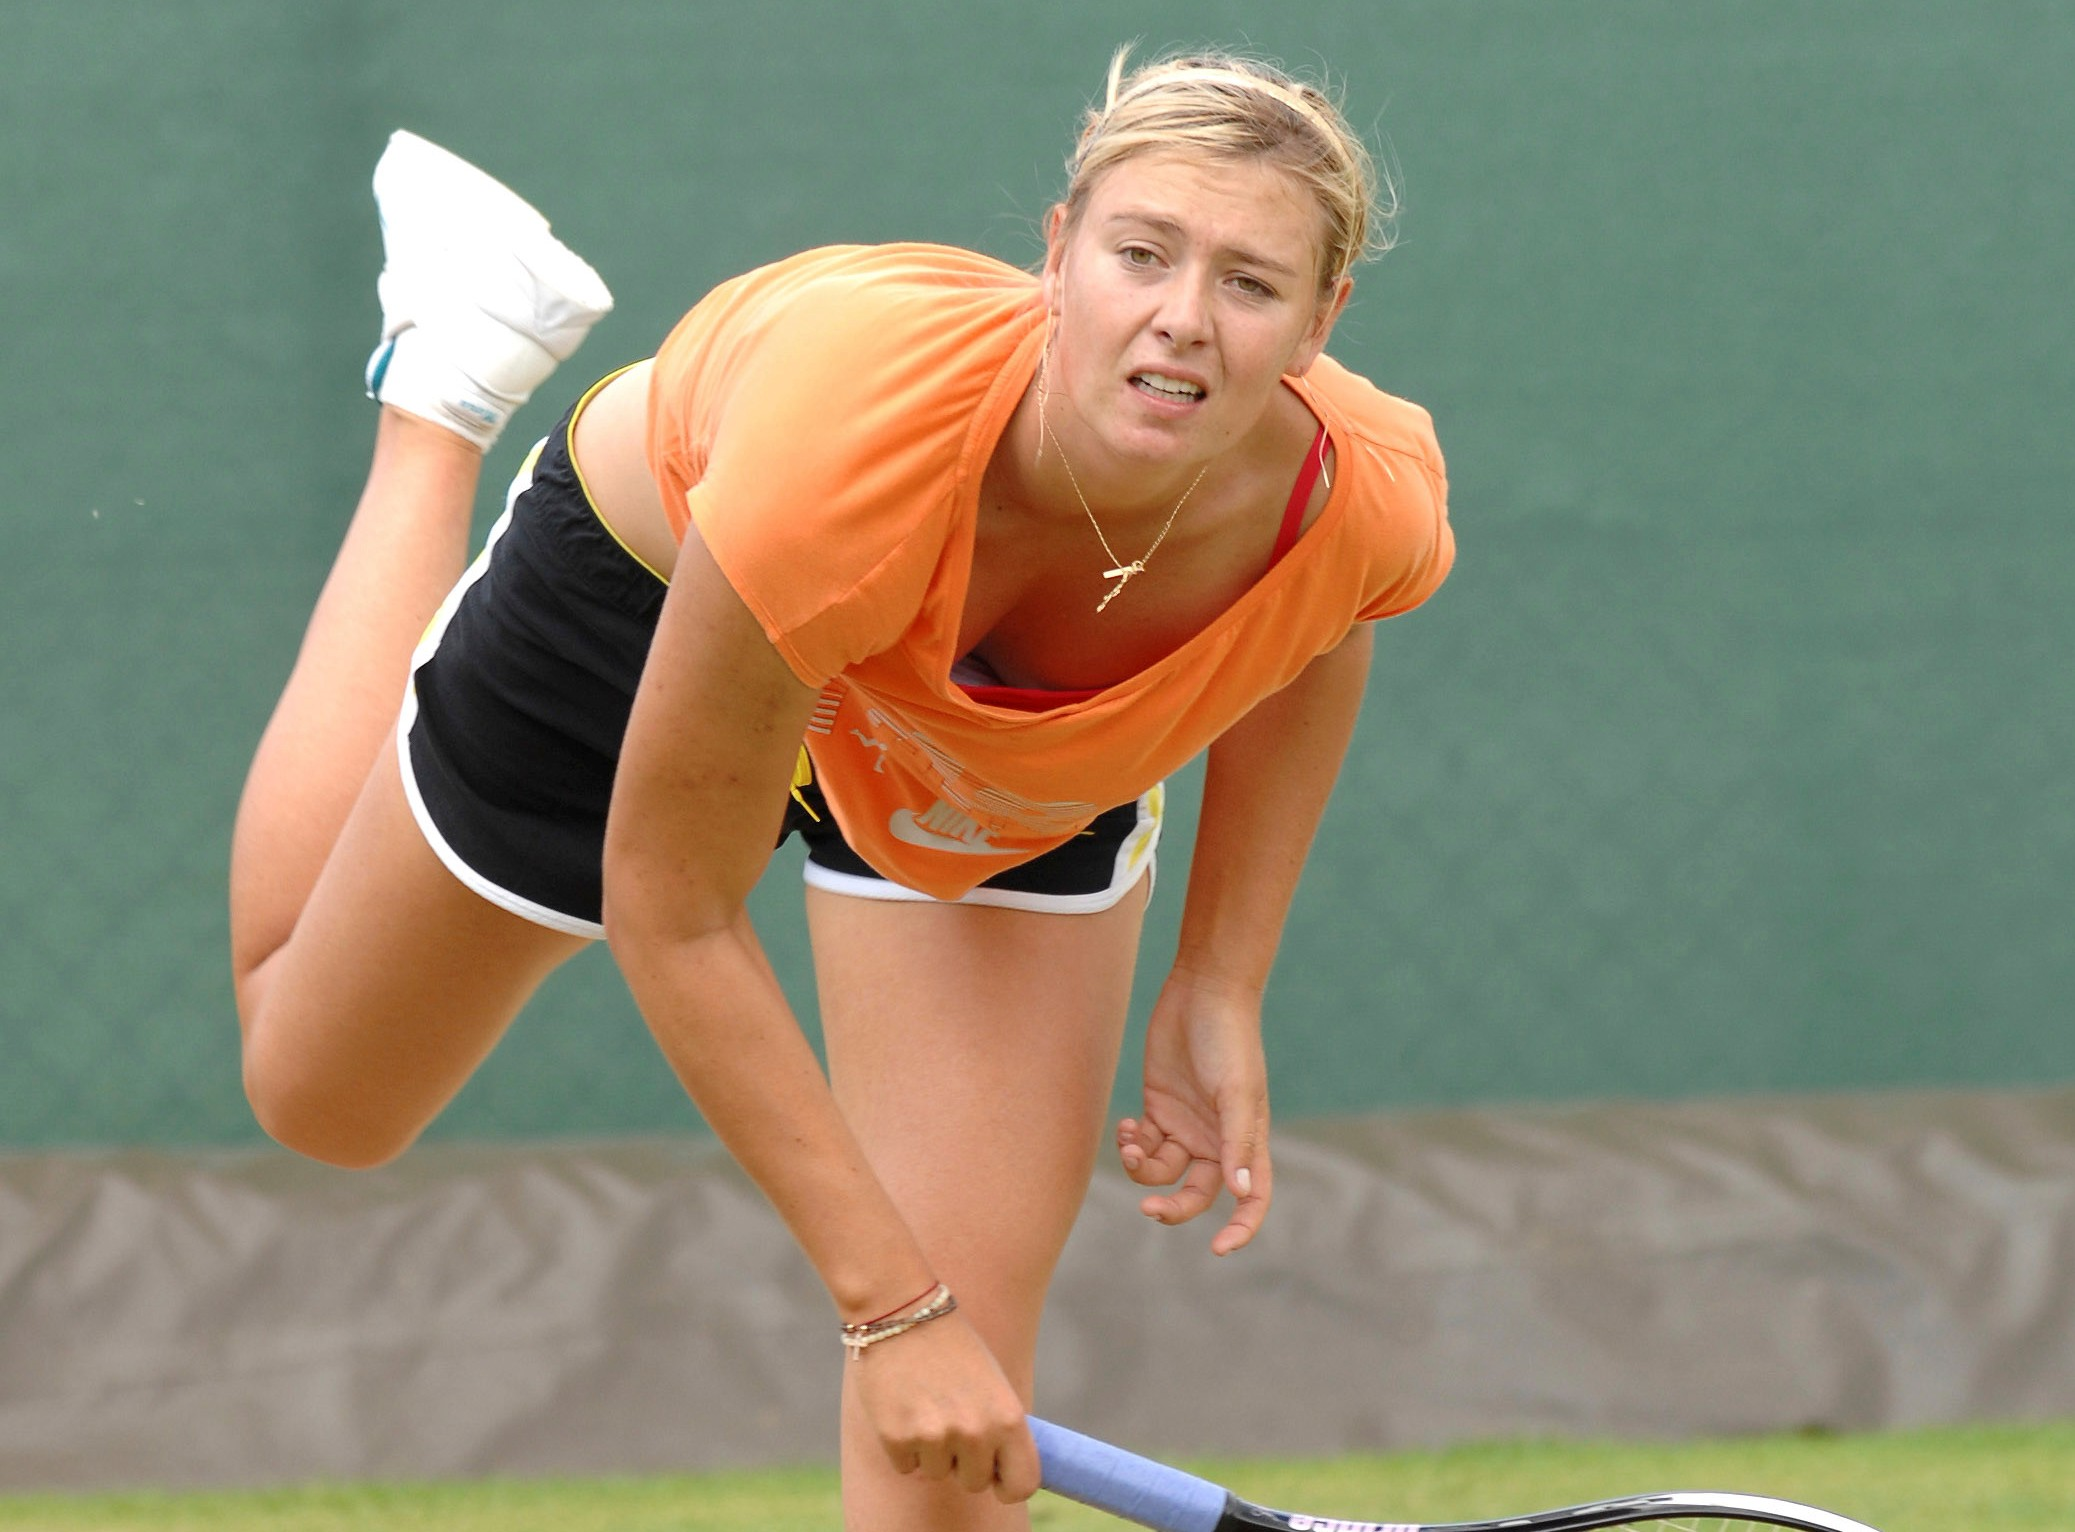 Dre pictures of maria sharapova naked